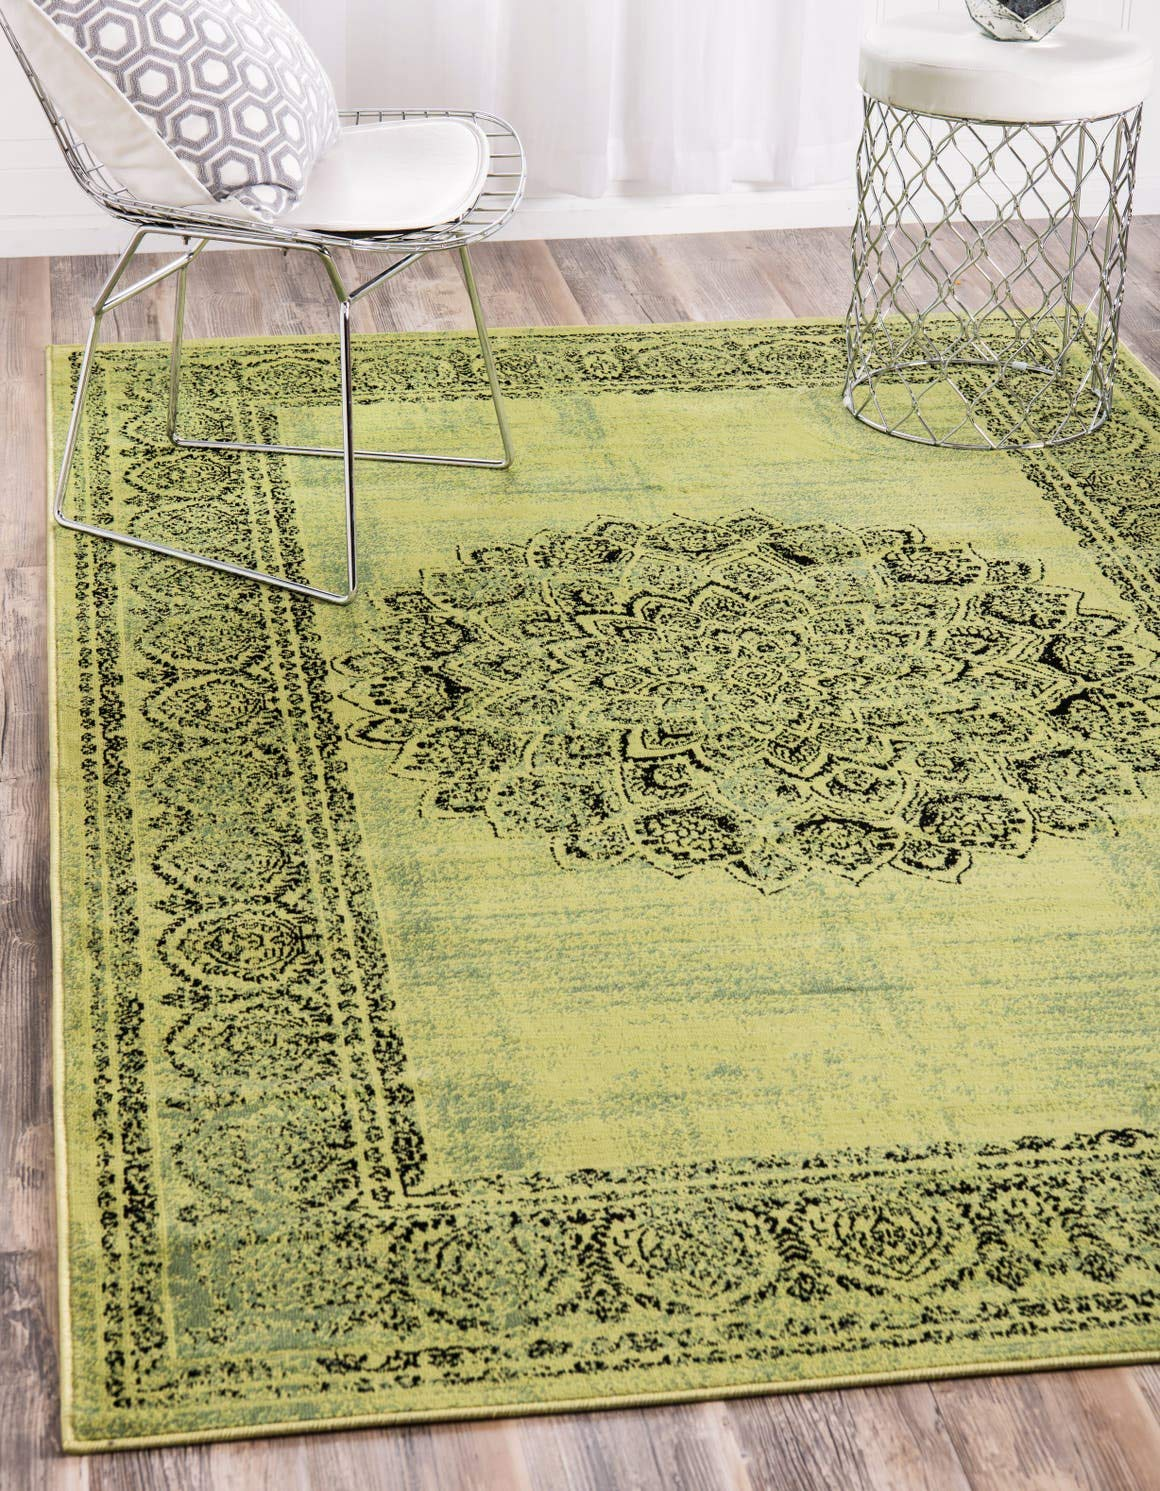 Unique Loom Imperial Collection Modern Traditional Vintage Distressed Sage Green Area Rug 5 0 x 8 0